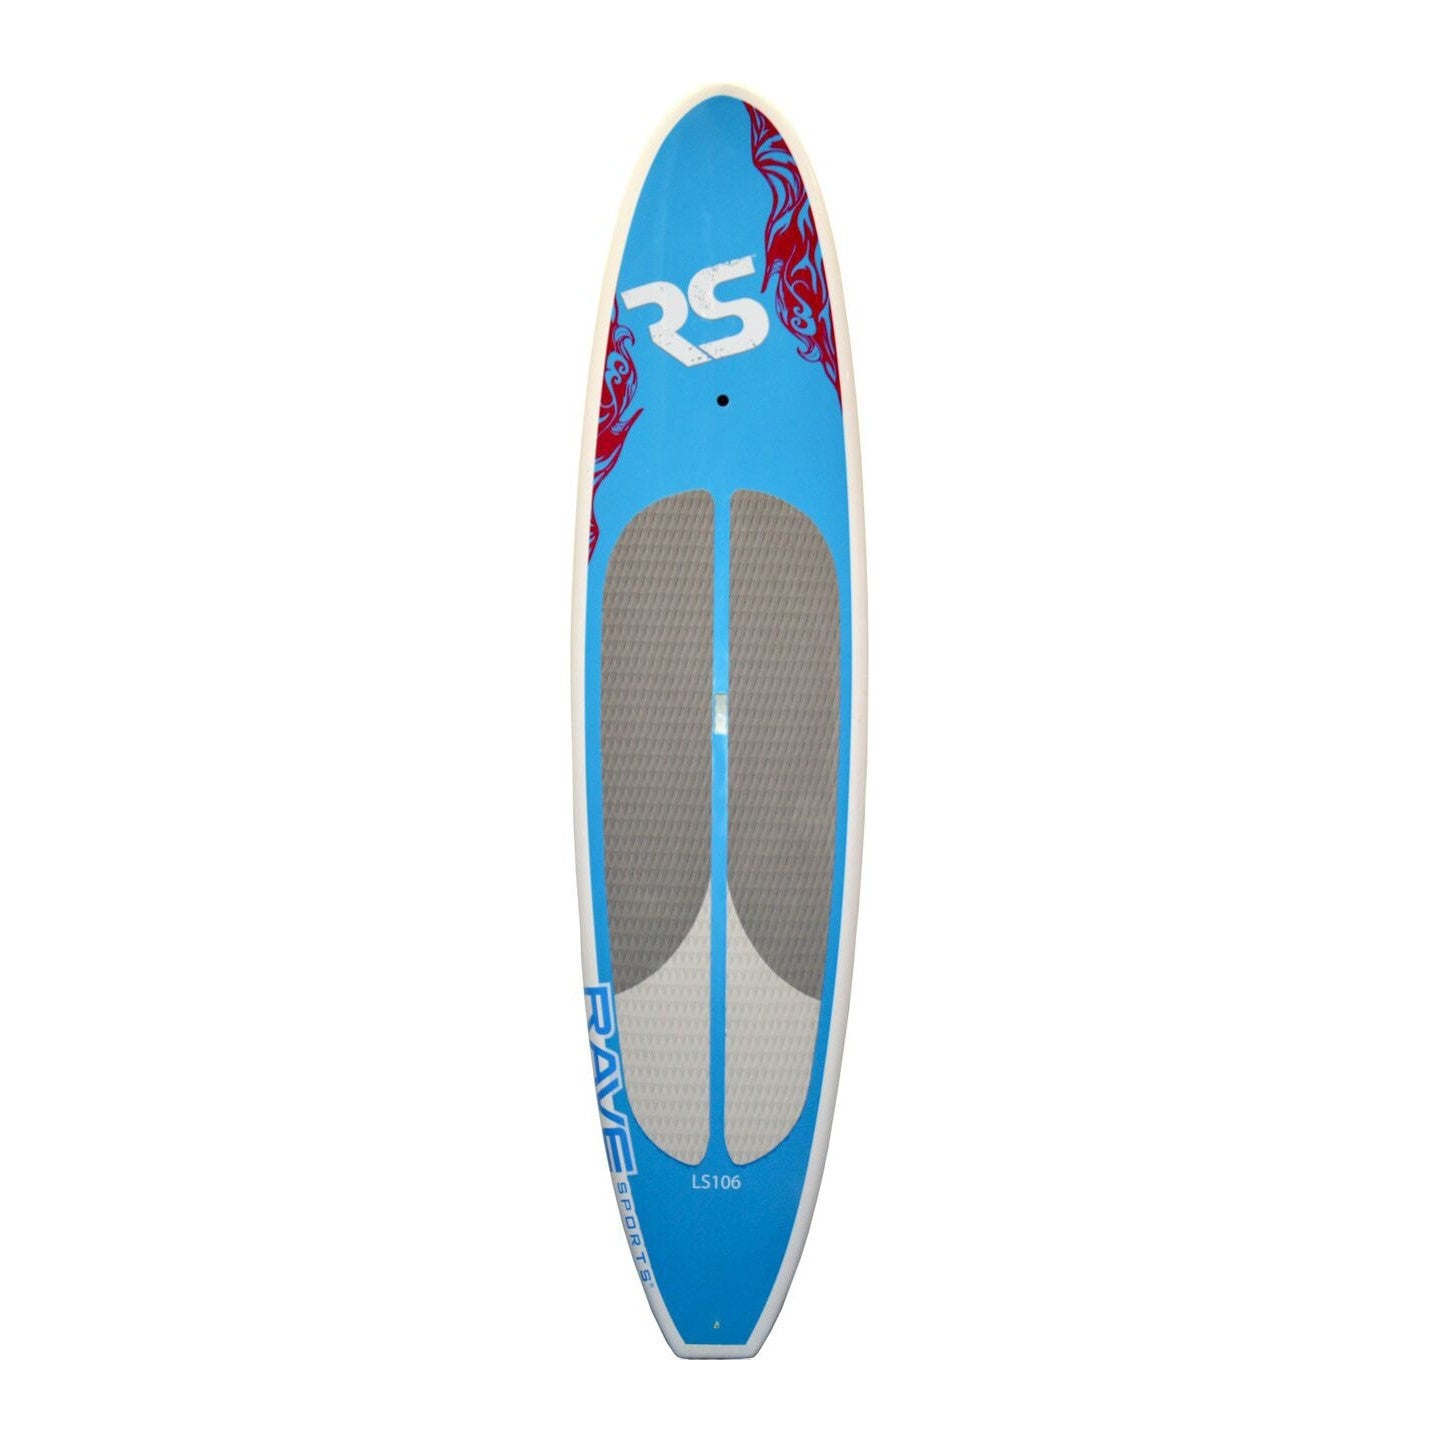 Rave Sports Lake Cruiser LS106 Stand Up Paddle Board SUP - 02448 - Kayak Creek